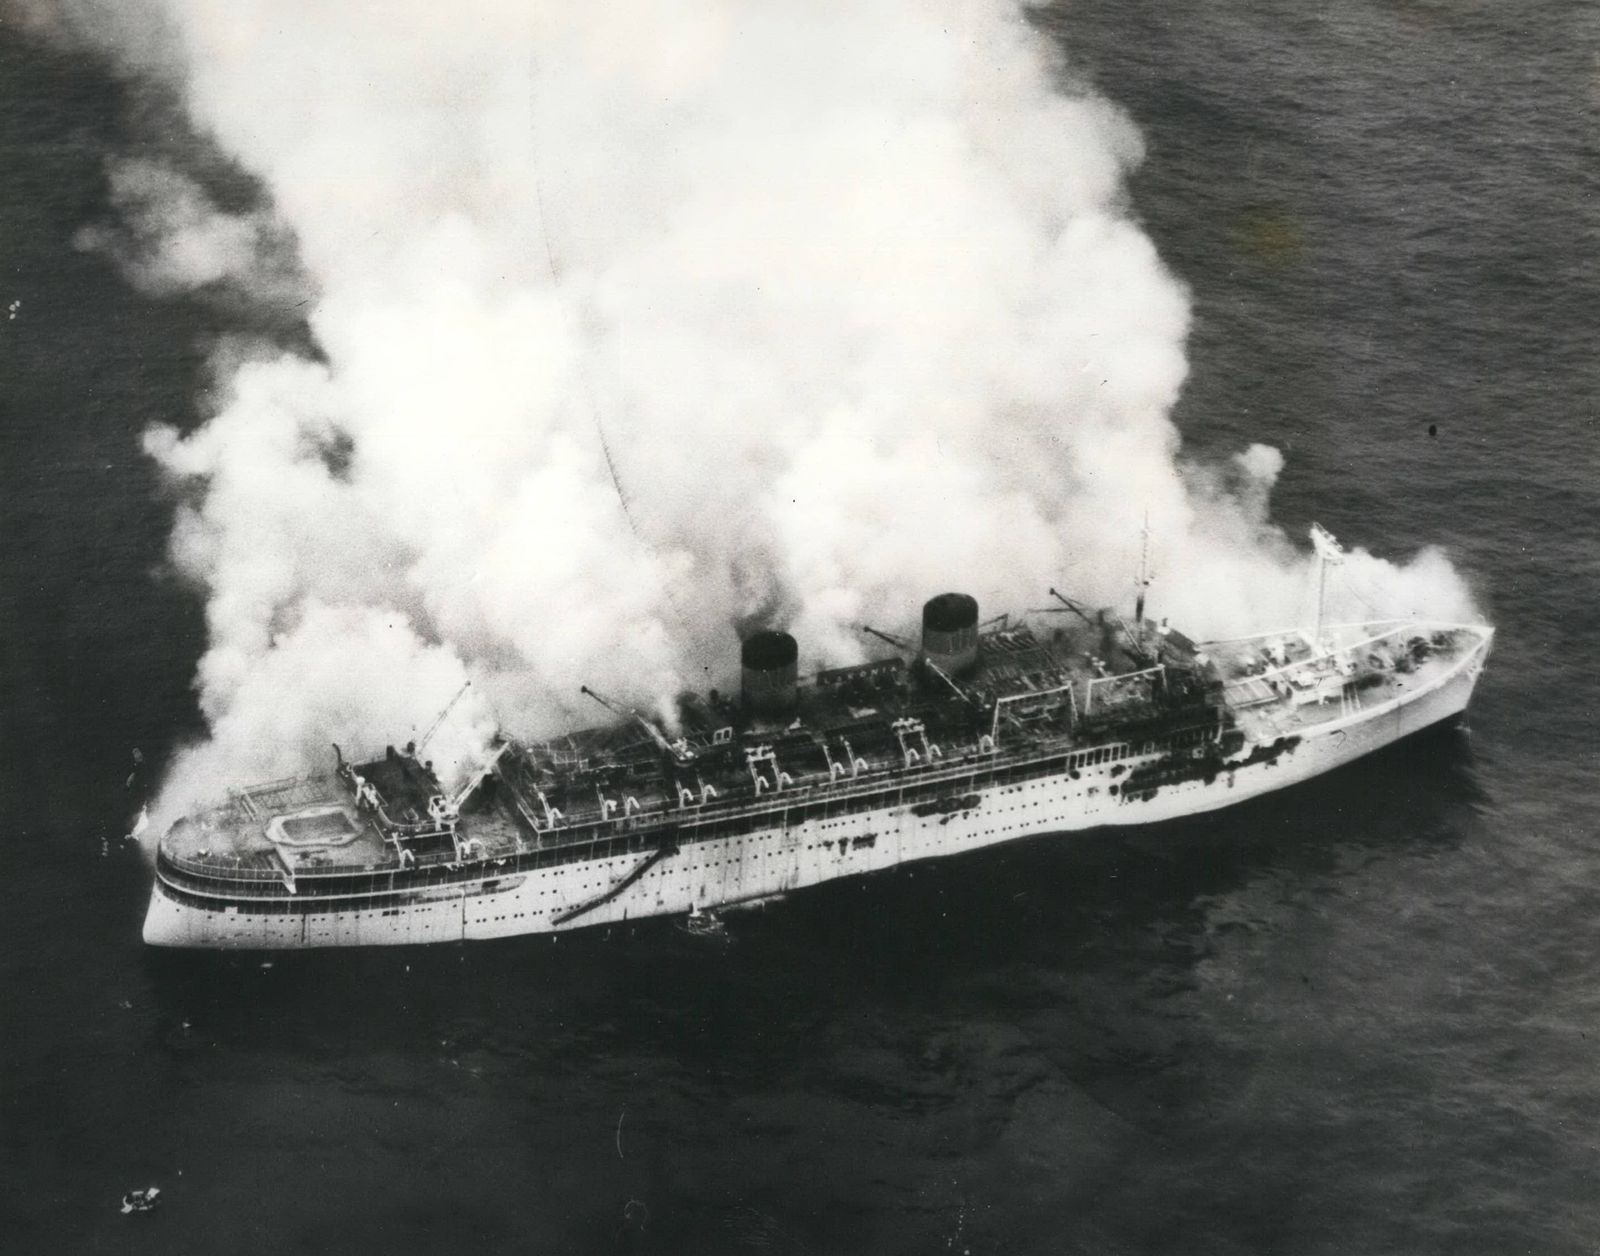 Dec 12 1963 919 Saved From Lakonia Of the 1 036 passengers and crew of the Christmas cruise lin